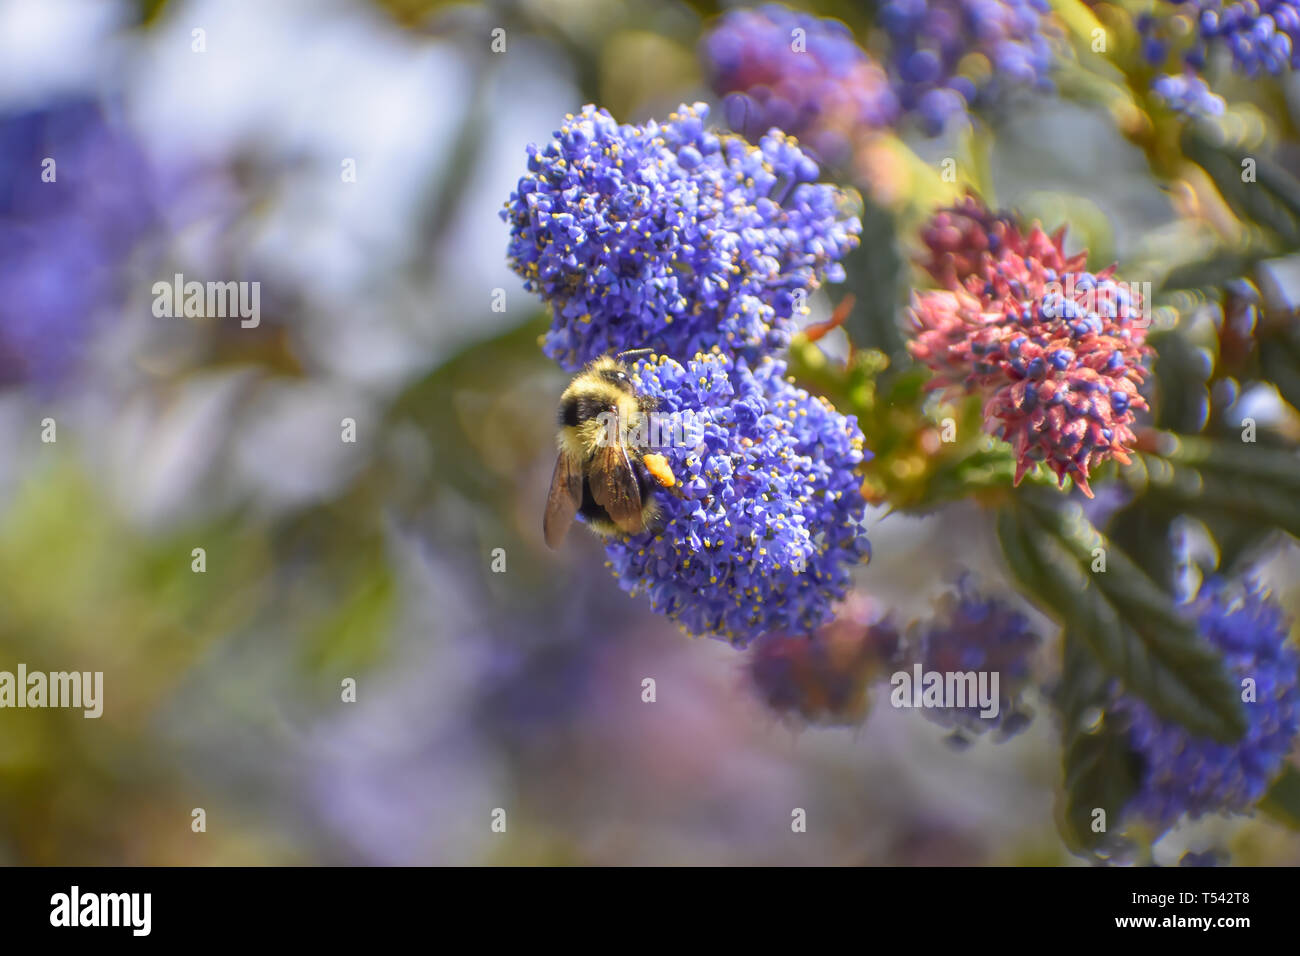 Closeup of a yellow and black bumble bee on the purple blossom of a wild lilac against the background of flowers and leaves. - Stock Image